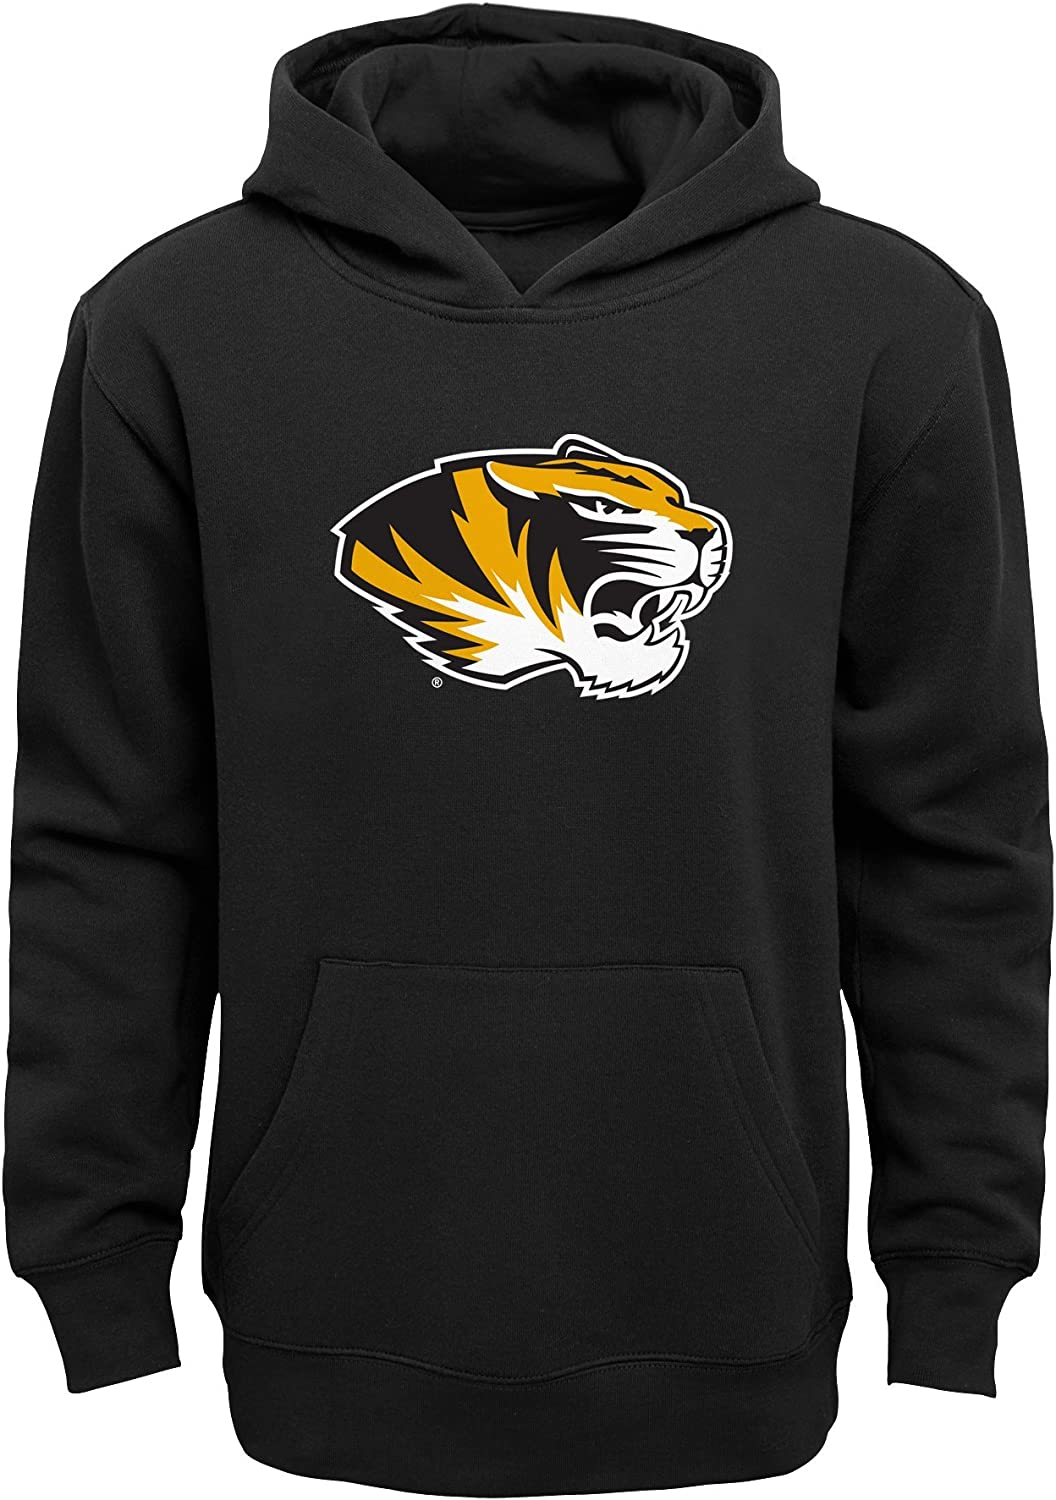 NCAA by Outerstuff Little NCAA Kids /& Youth Boys Team Logo Pullover Hoodie Kids Medium 5-6 Missouri Tigers Black